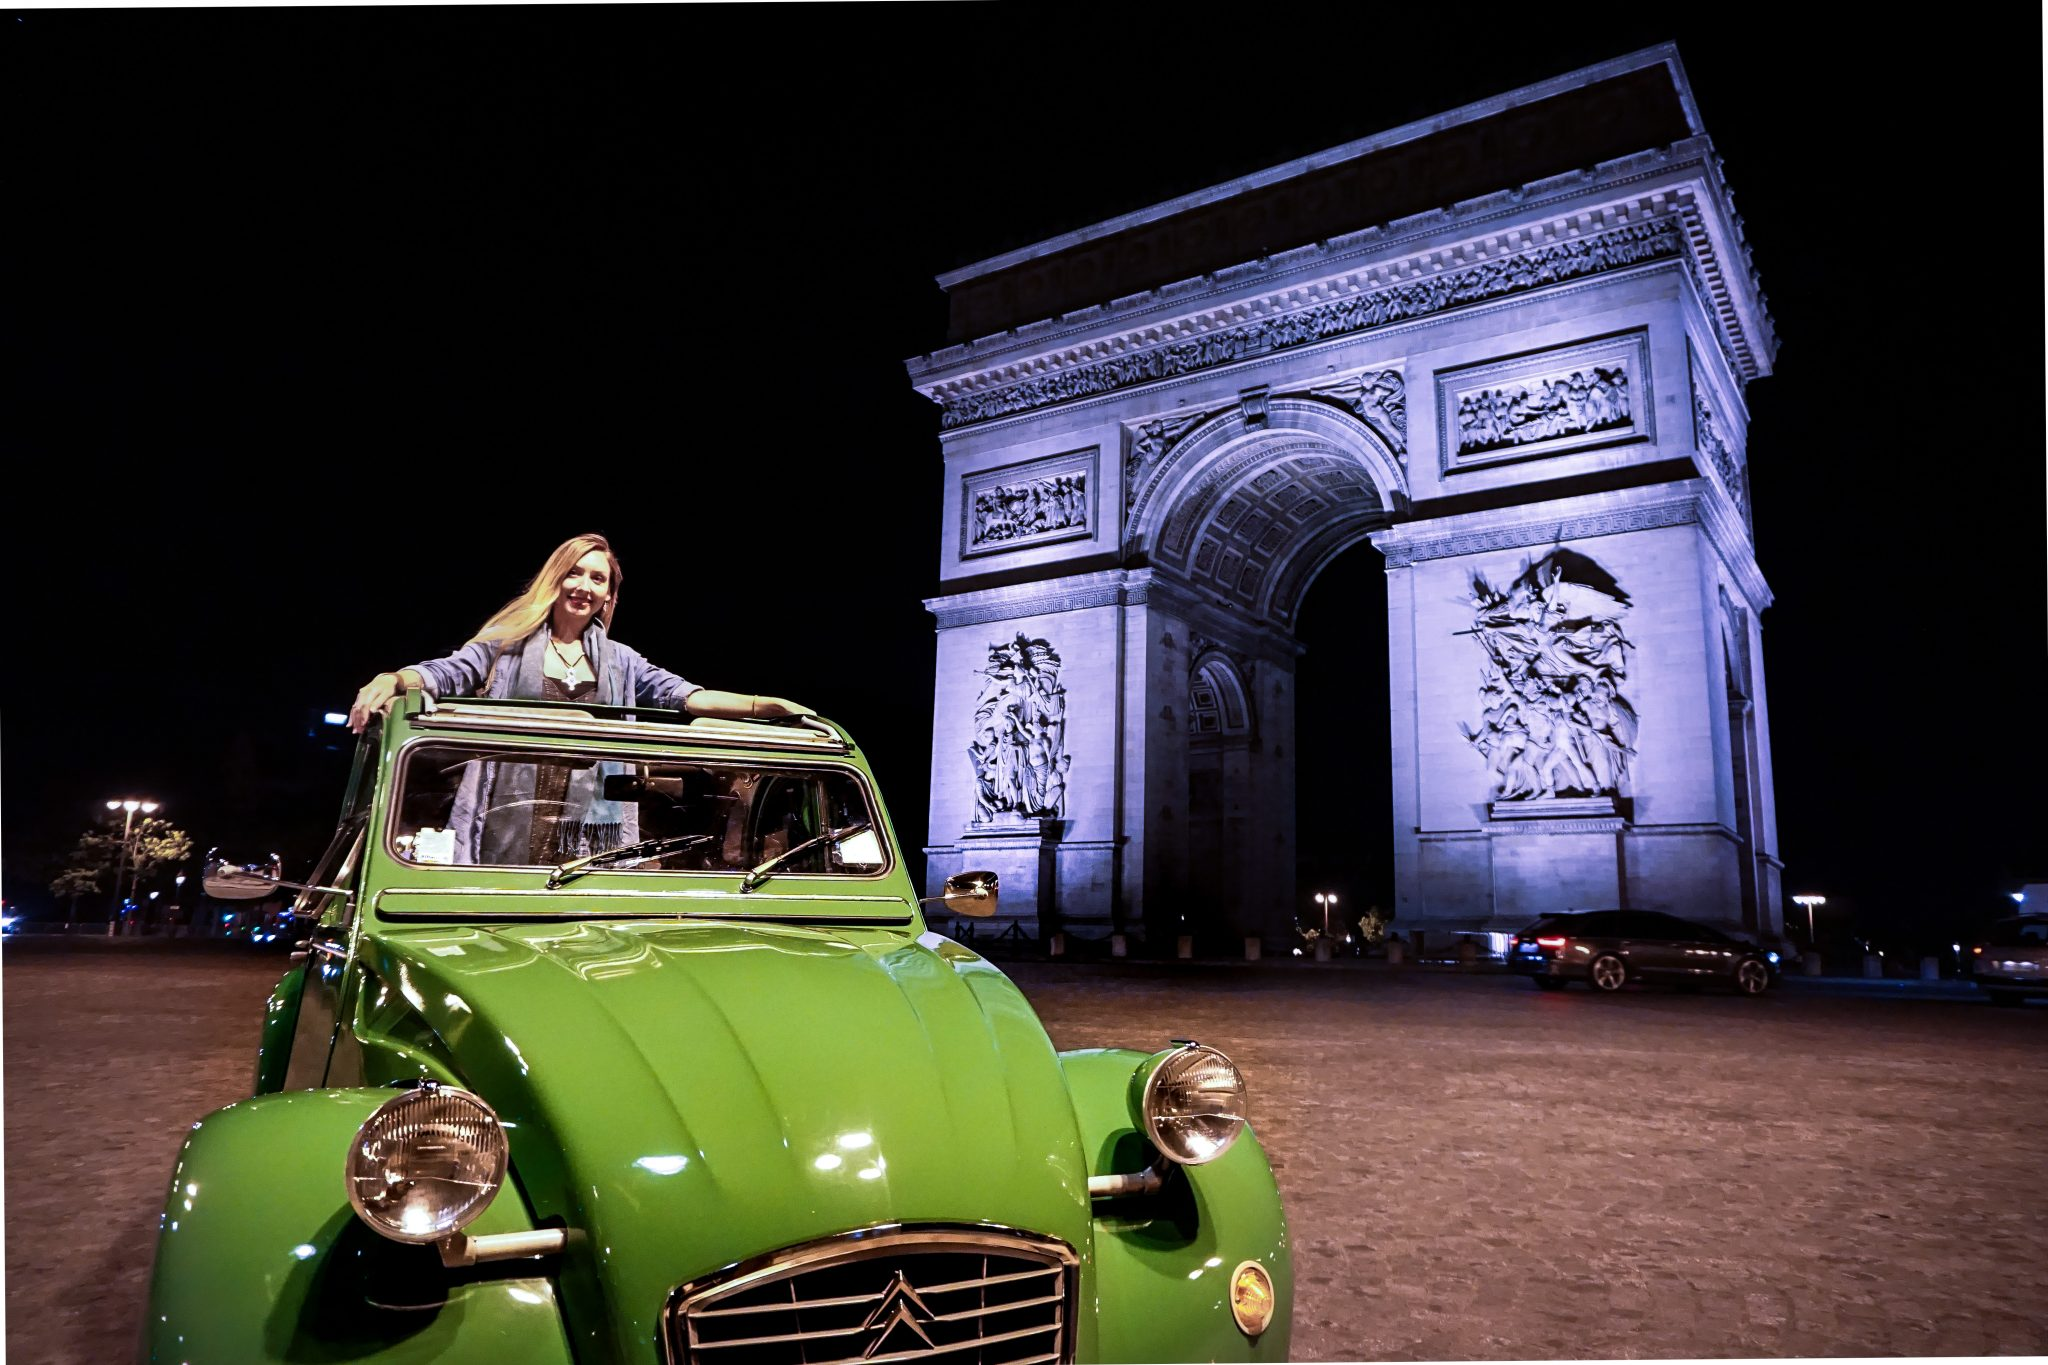 arc de triomphe, Paris, 2CV, unique tour in Paris